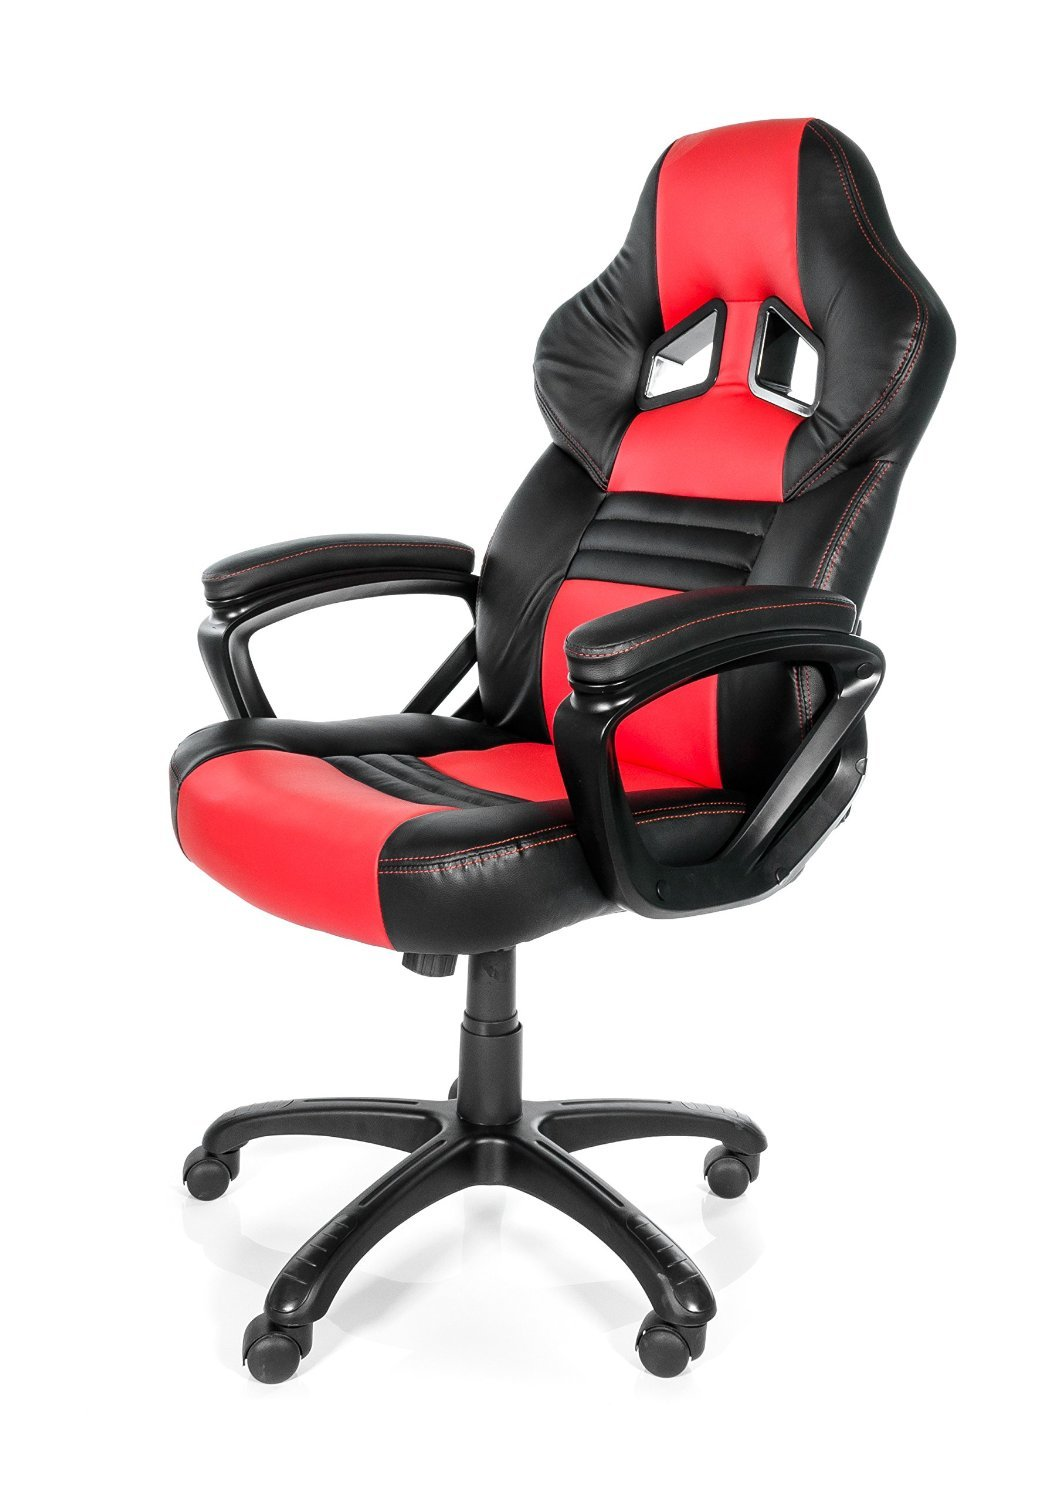 The amazing wallpaper is segment of gaming chair for real gamers